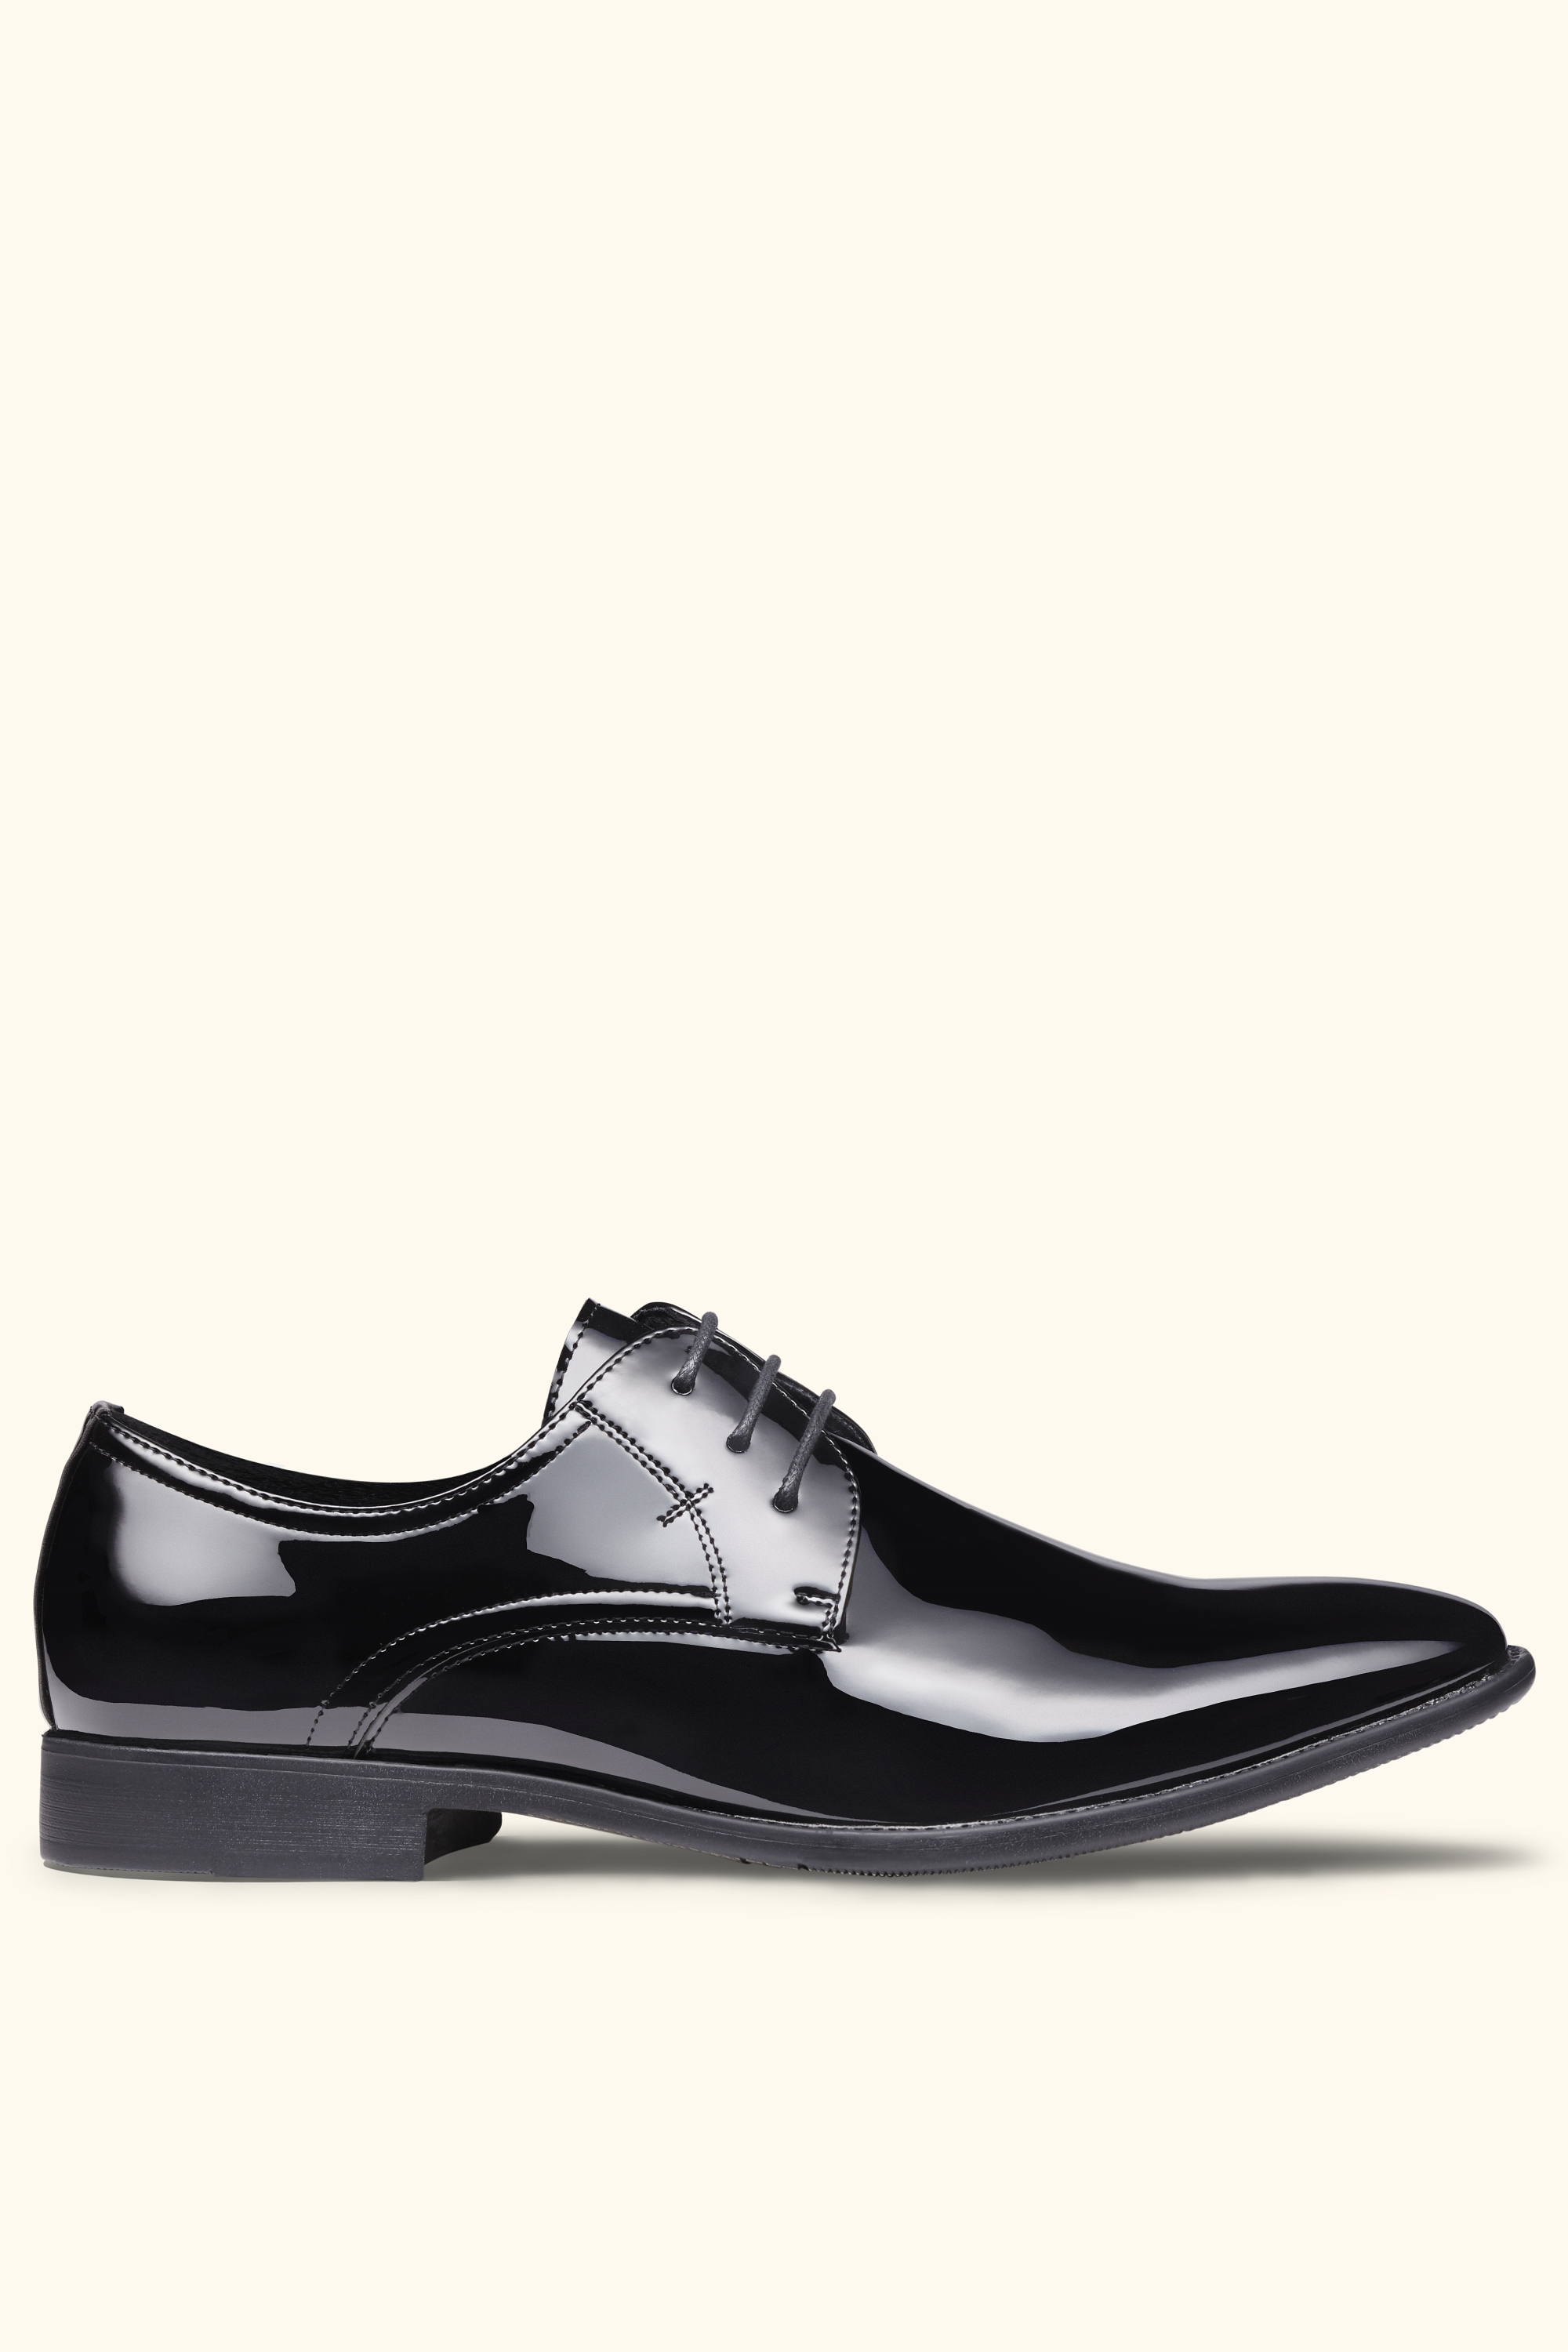 Moss London Black Patent Dress Shoes